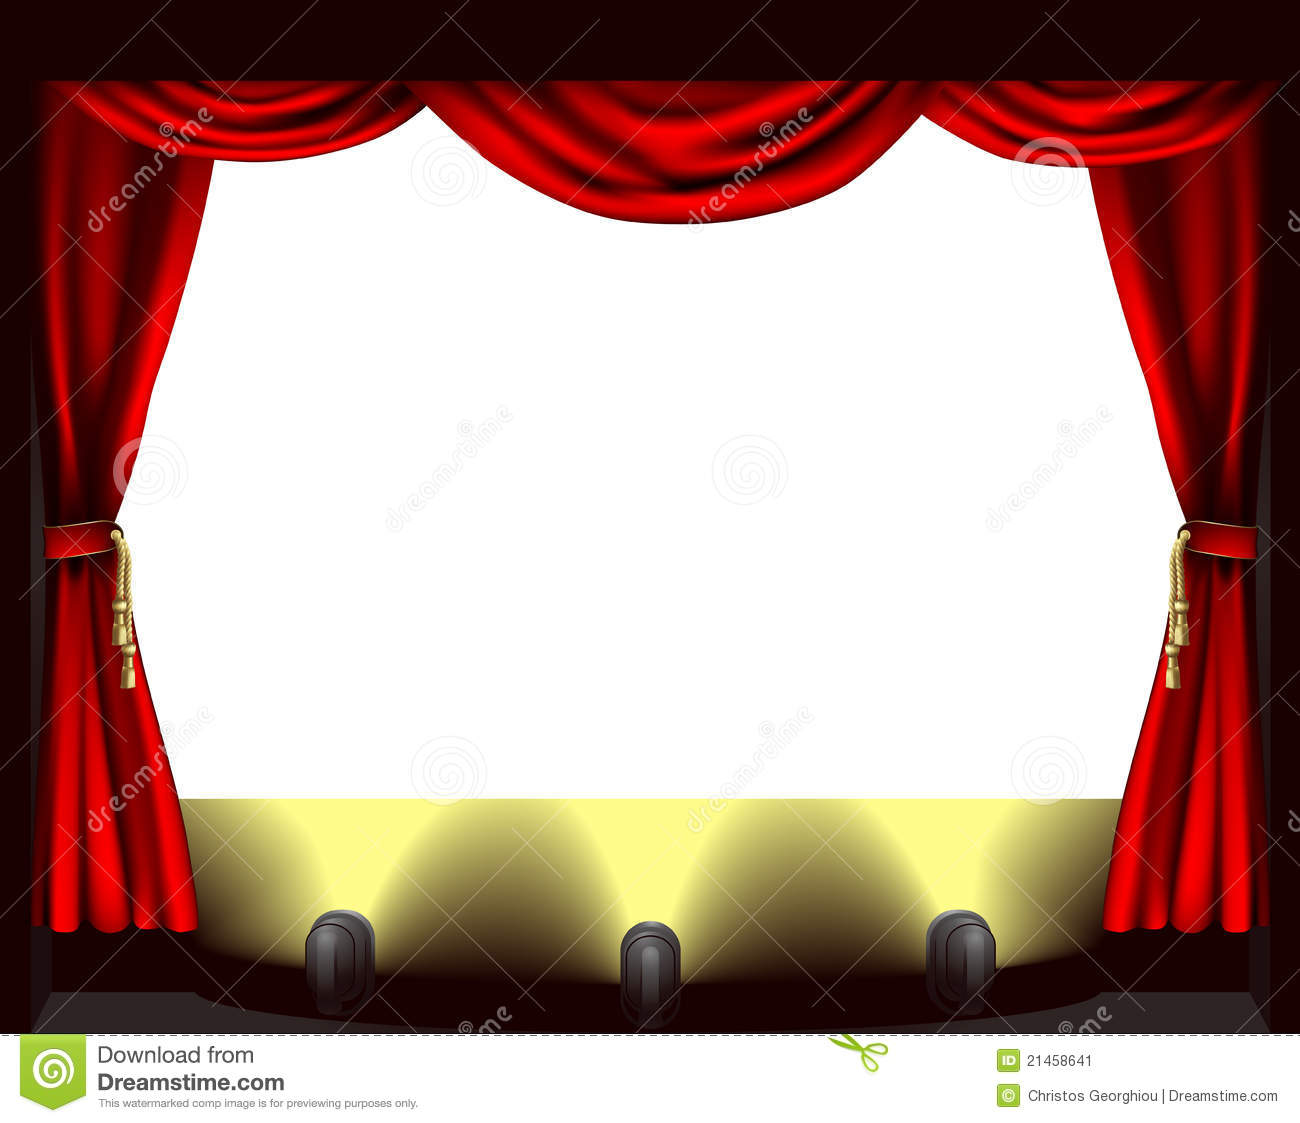 theatre stage, lights and curtain illustration.